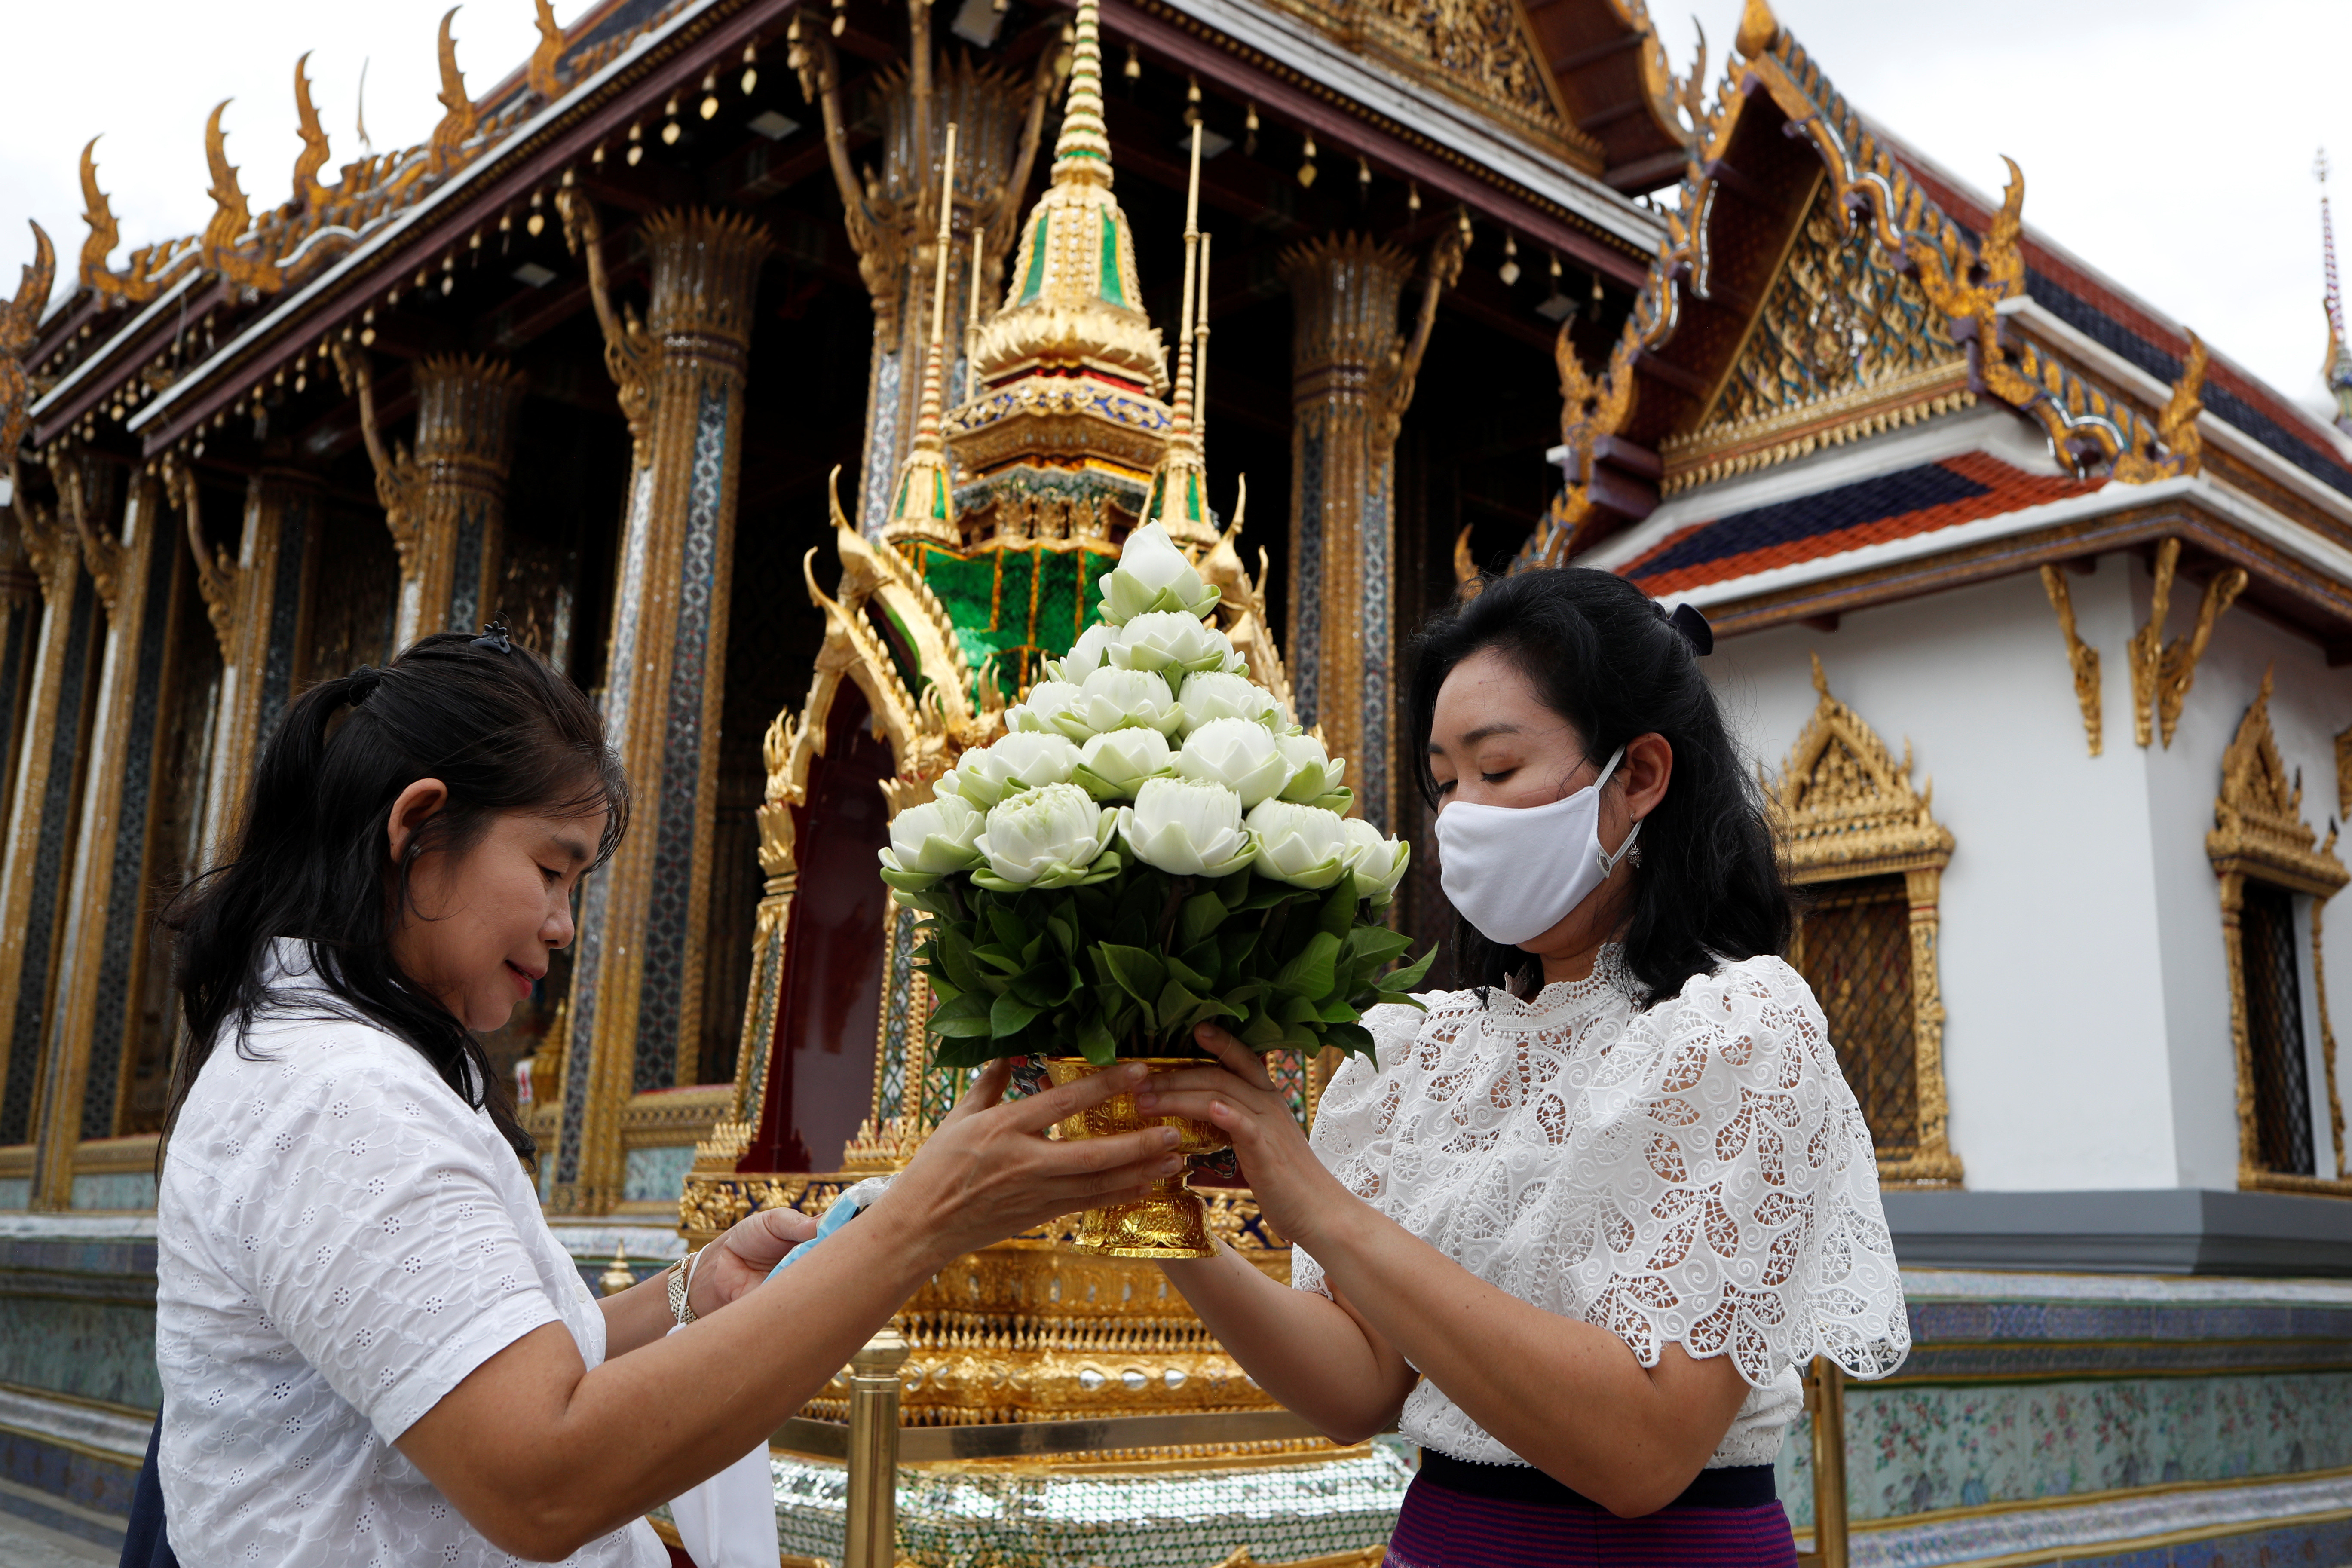 People visiting the Grand Palace hold flowers, as it reopens after months of being closed, as the Thai government eases isolation measures, amid the spread of the coronavirus disease (COVID-19) in Bangkok, Thailand, June 7, 2020. REUTERS/Jorge Silva - RC264H97PEHW